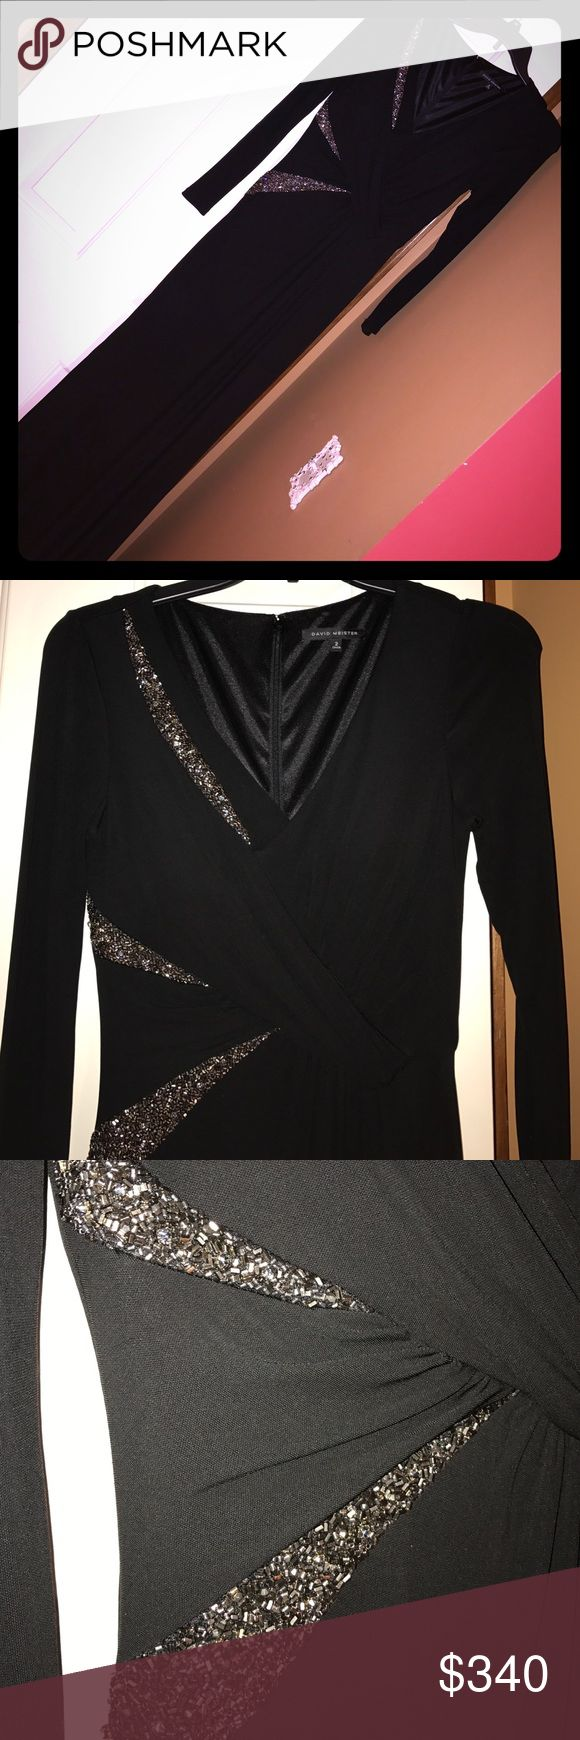 David Meister Black Long-sleeves Gown Beautiful black gown by David Meister. Beautiful embellishment as pictured. Size two and fits true to size. Worn only once and gently cleaned. David Meister Dresses Long Sleeve